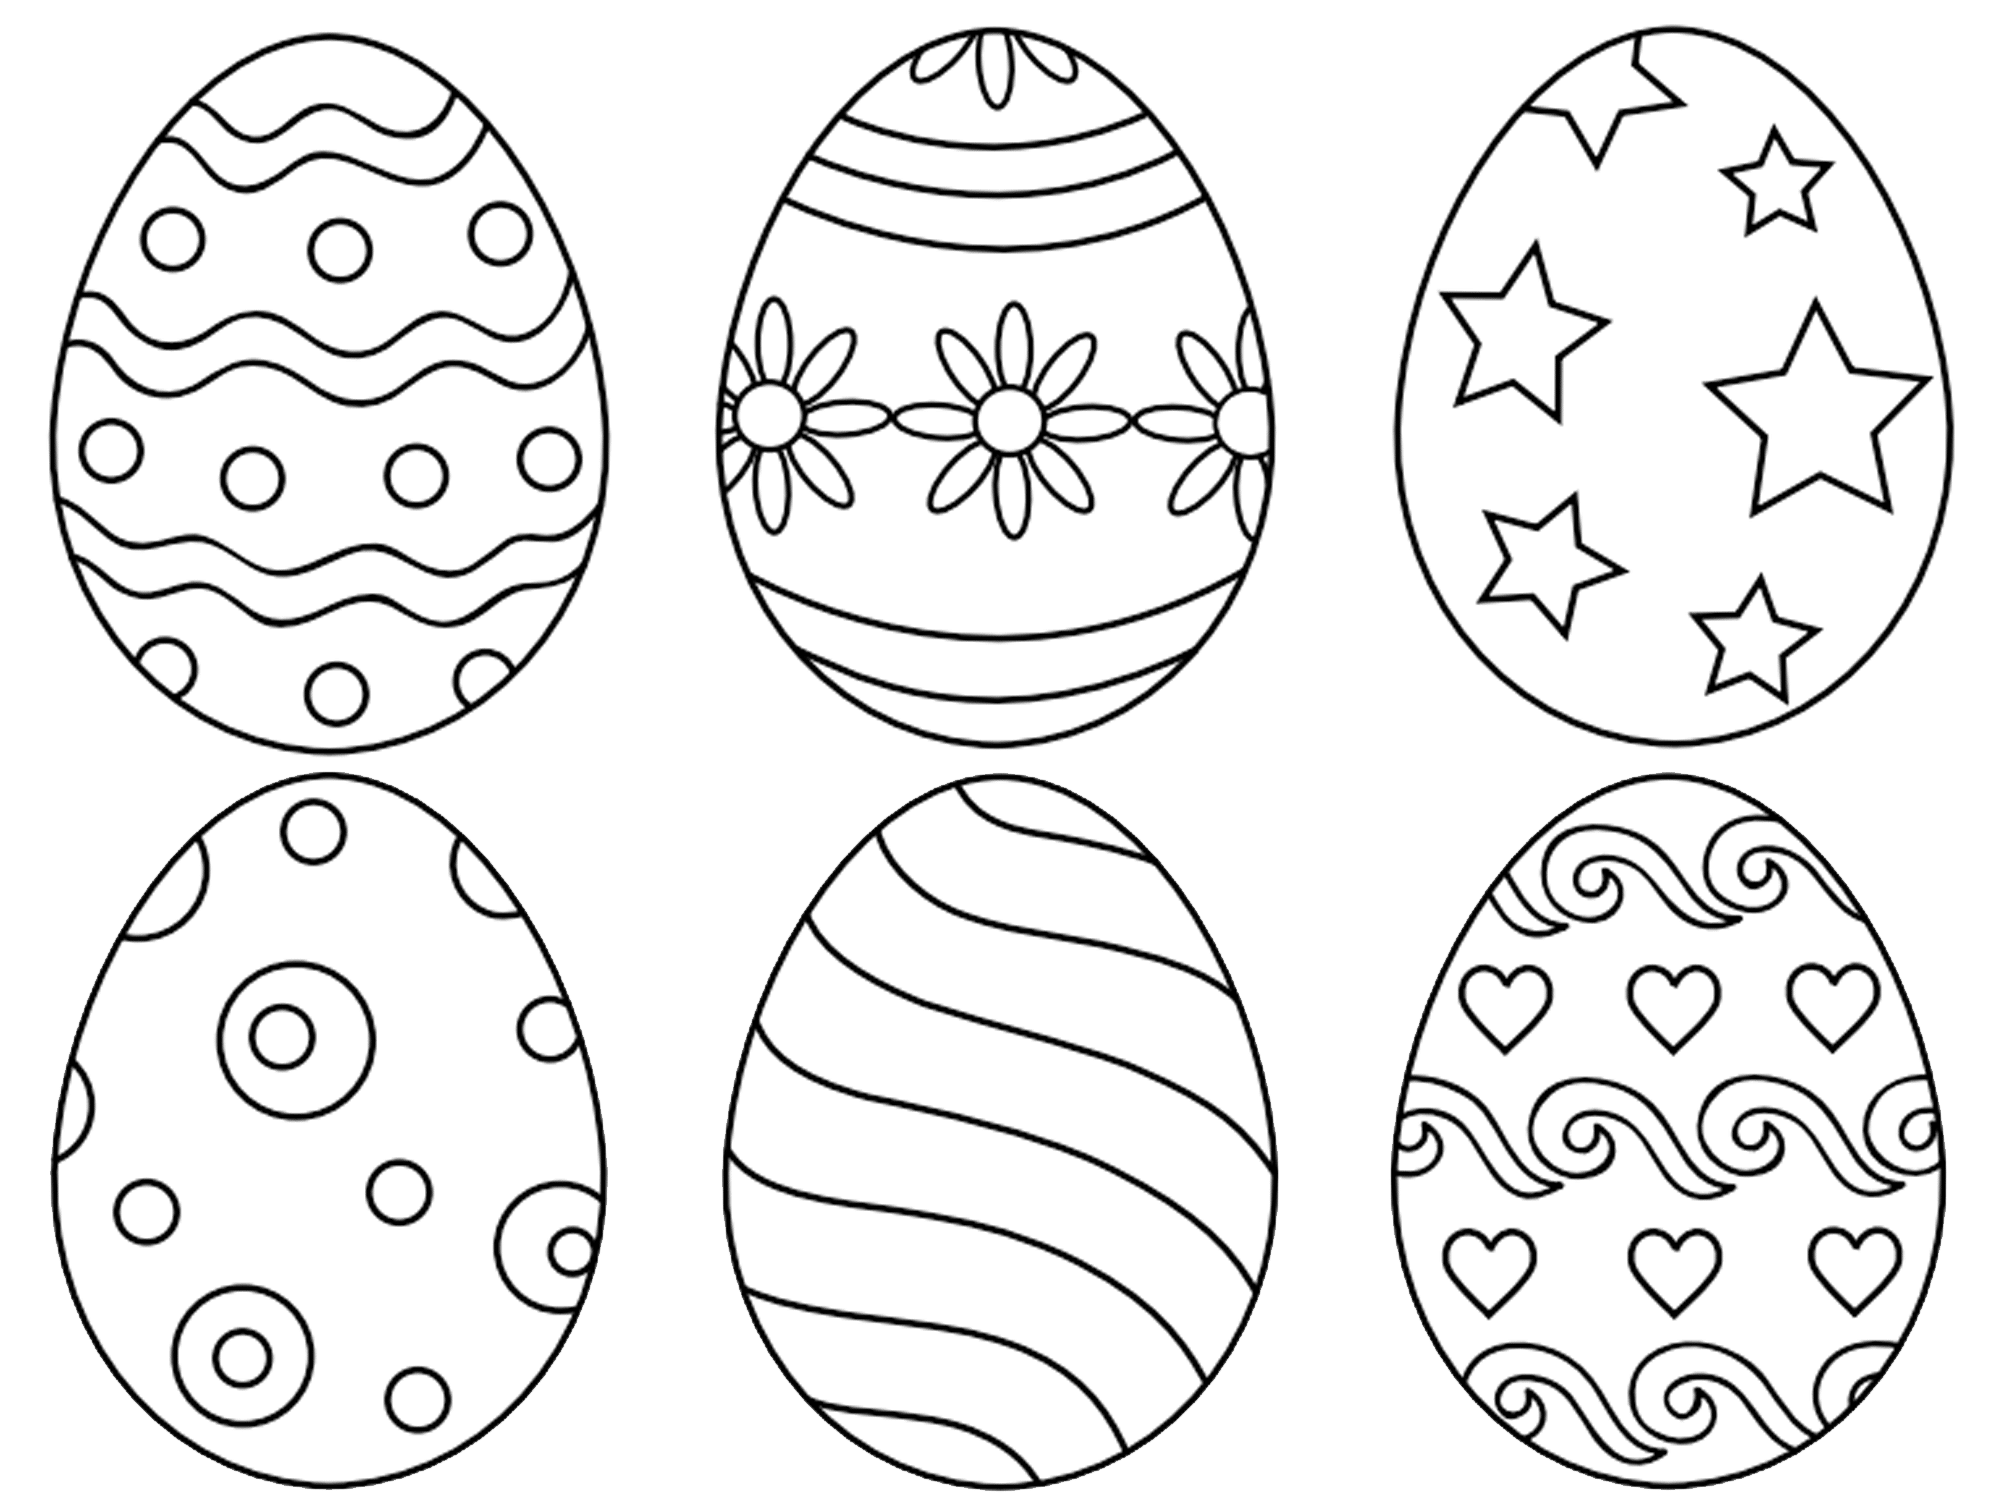 Easter Egg Drawing At GetDrawings.com